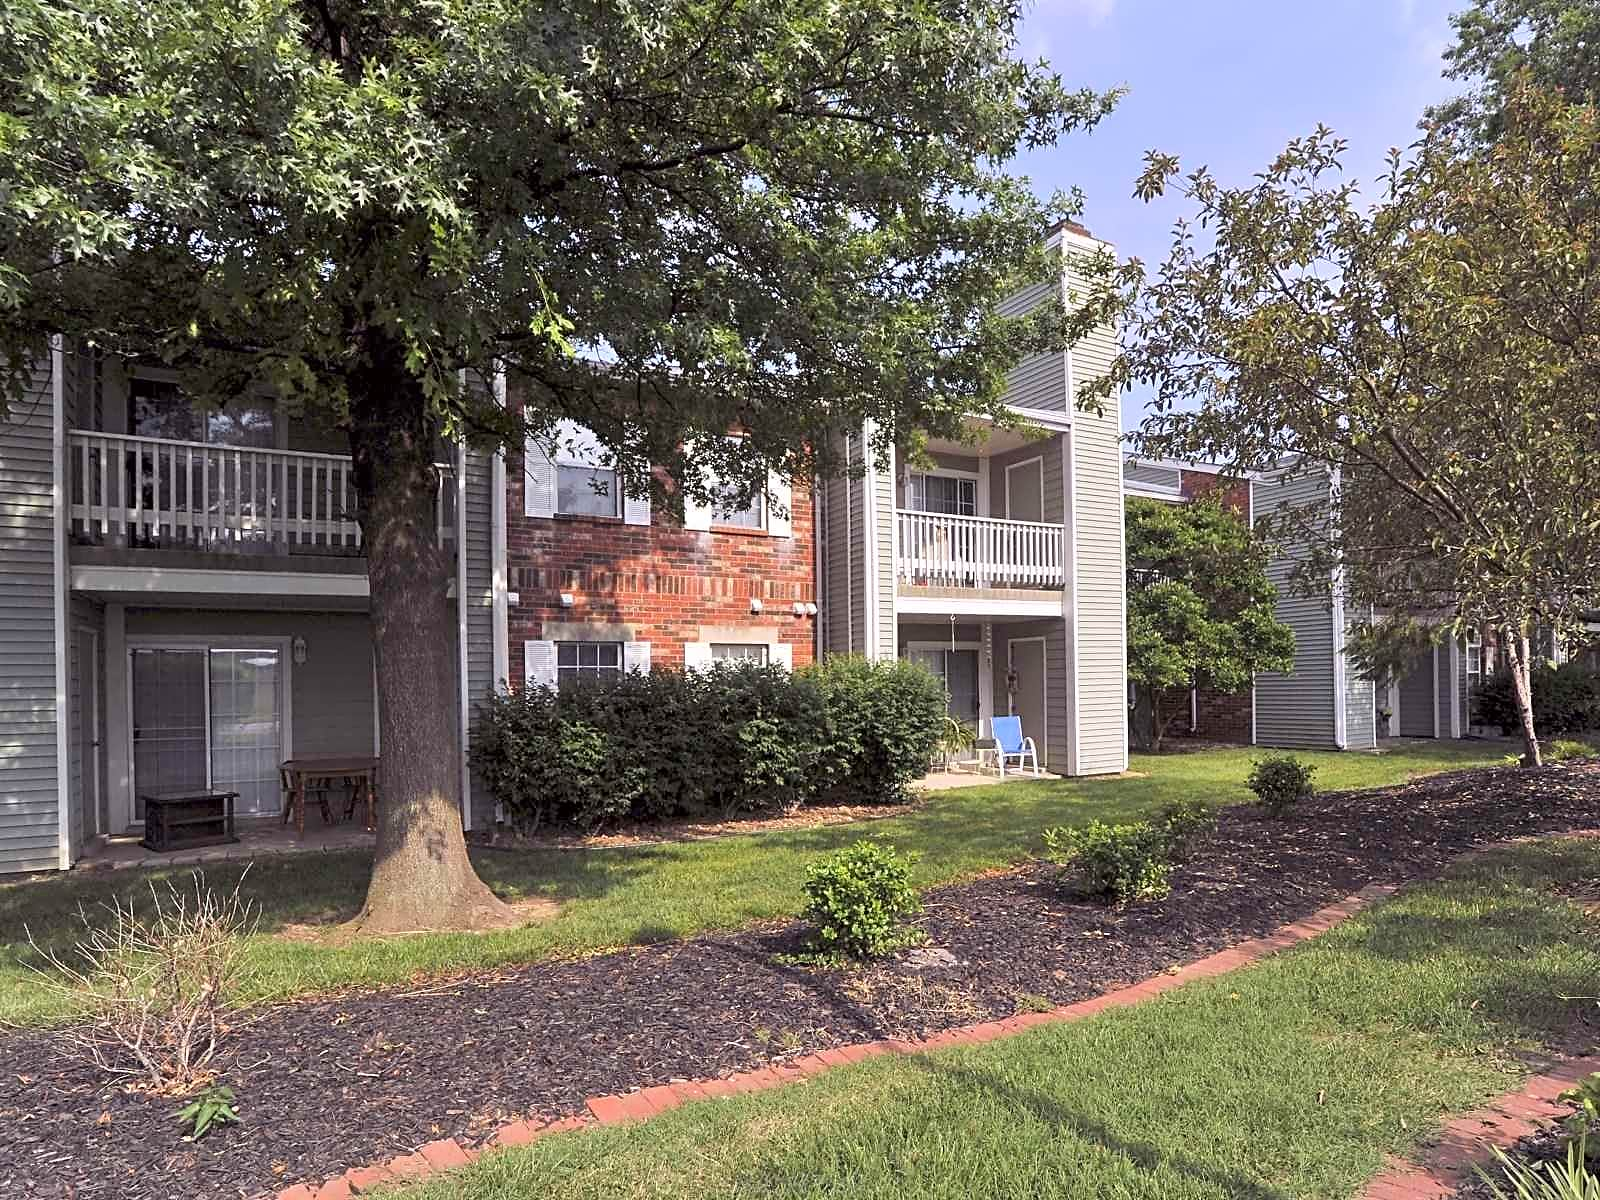 Apartments Near Ross Medical Education Center-Evansville Sugar Mill Creek for Ross Medical Education Center-Evansville Students in Evansville, IN